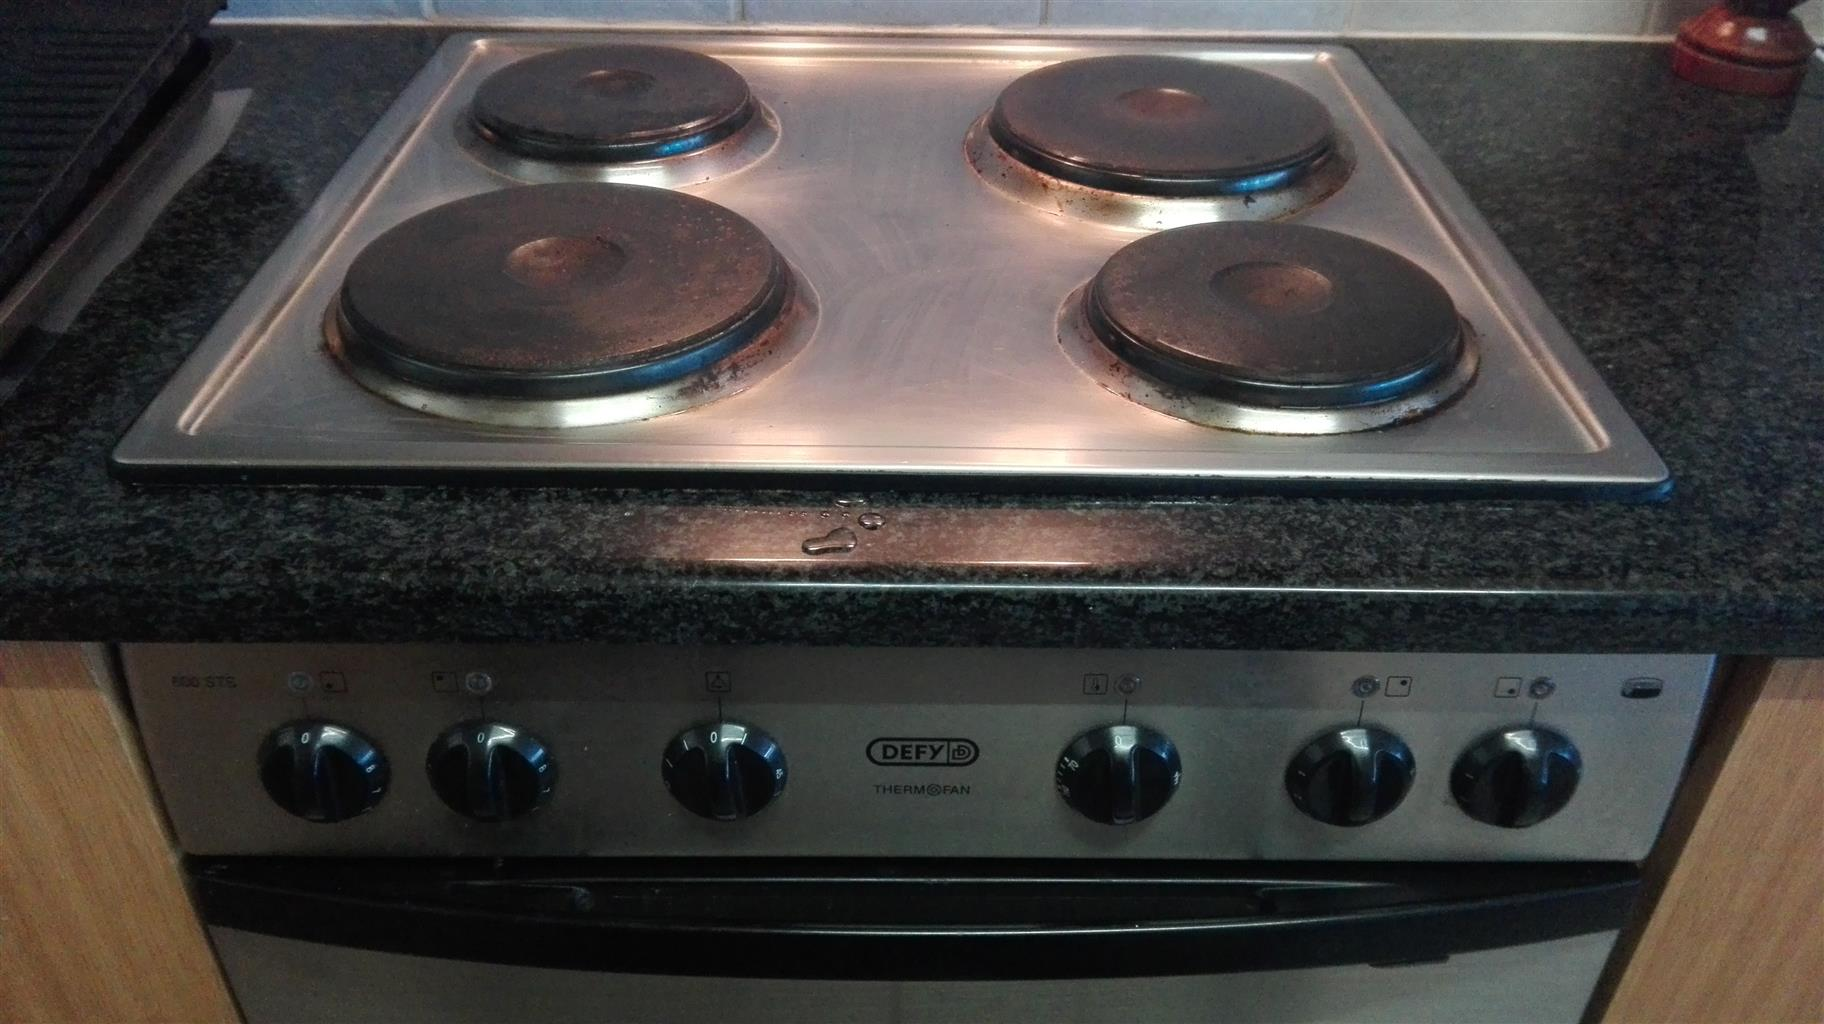 DEFY 600 STS 4-plate stove & Thermofan oven combination